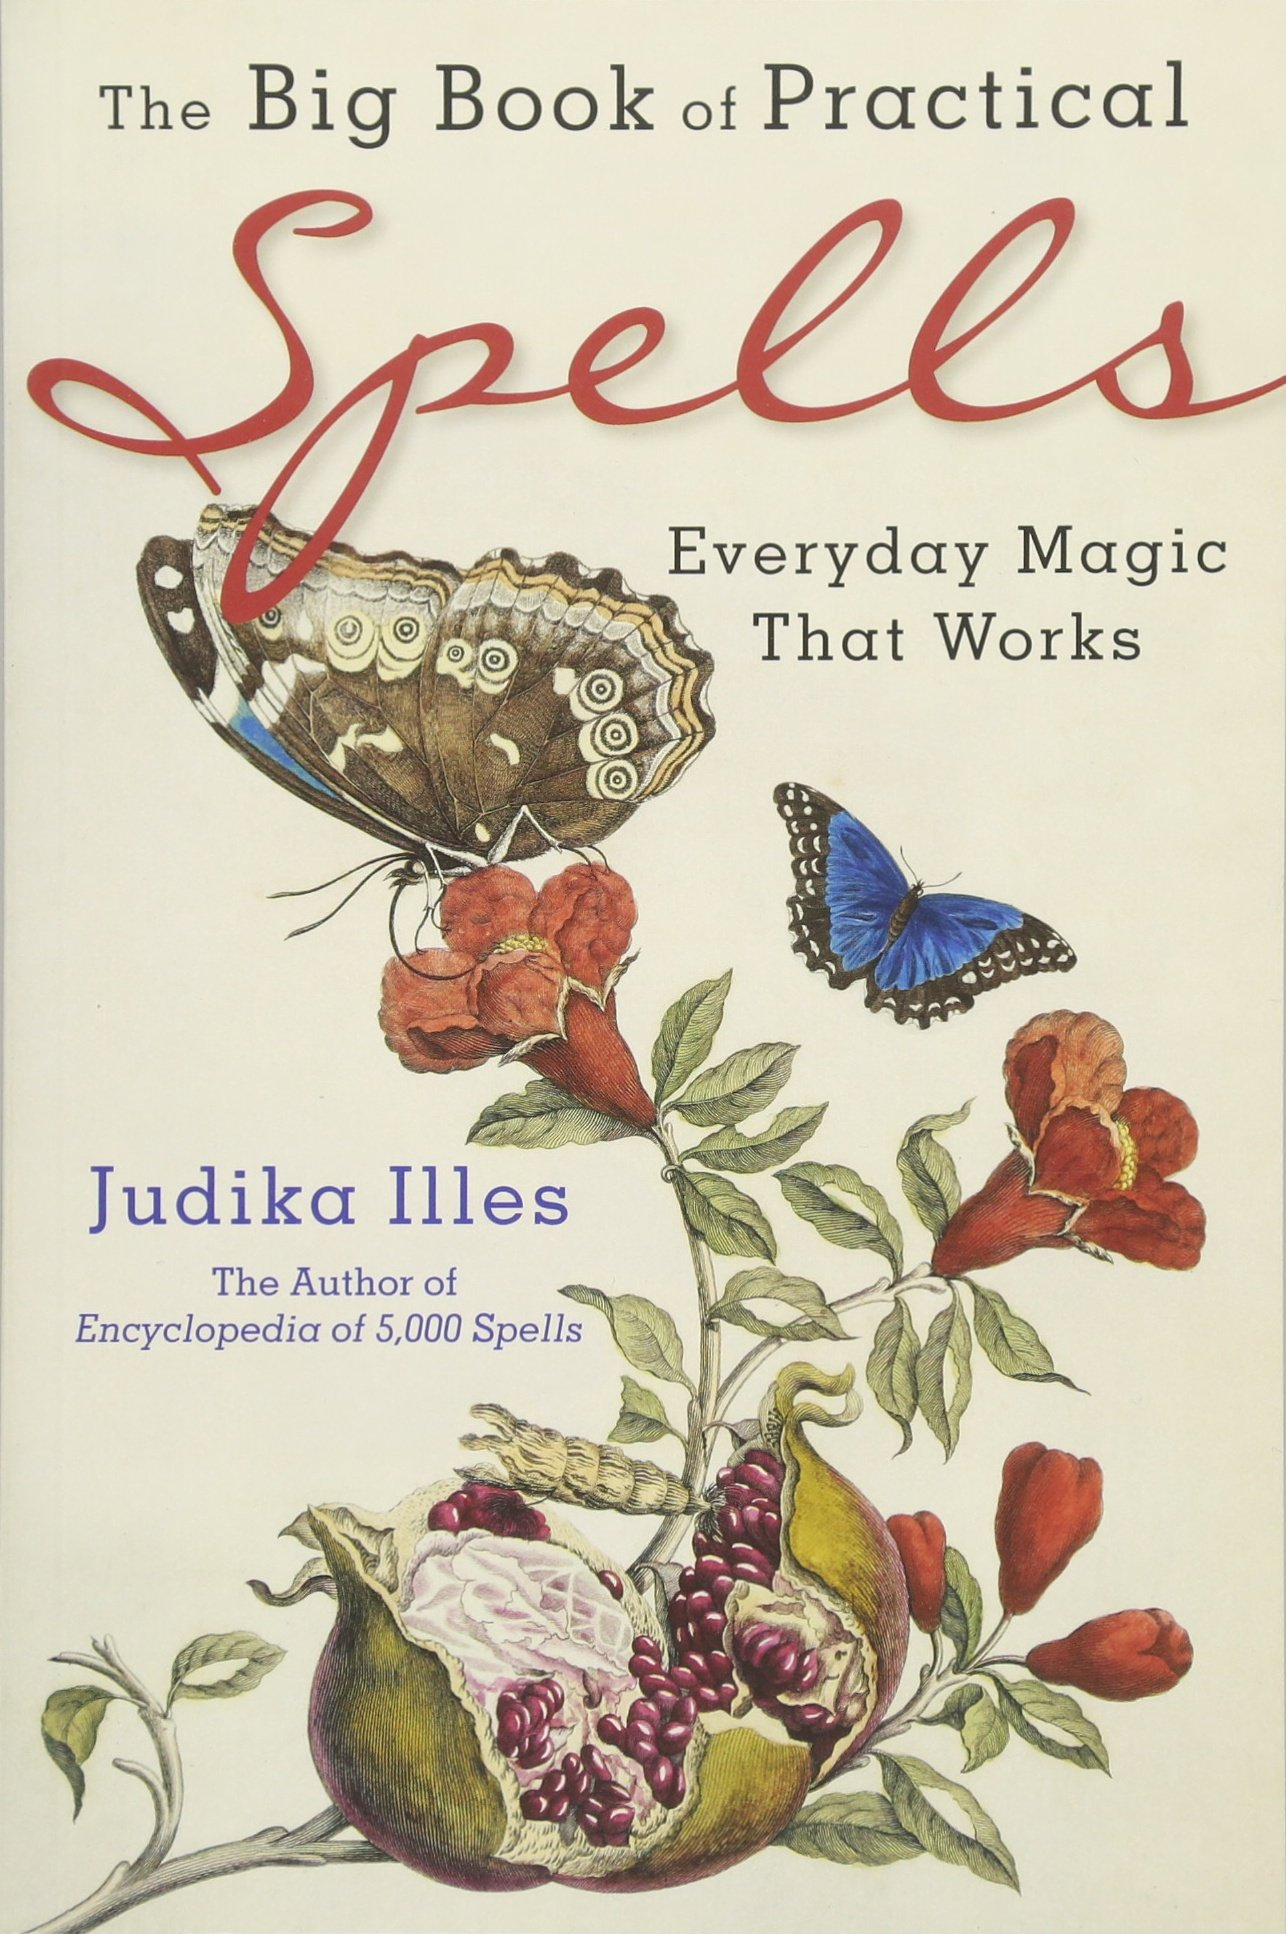 The big book of practical spells everyday magic that works judika the big book of practical spells everyday magic that works judika illes 9781578635979 amazon books fandeluxe Image collections